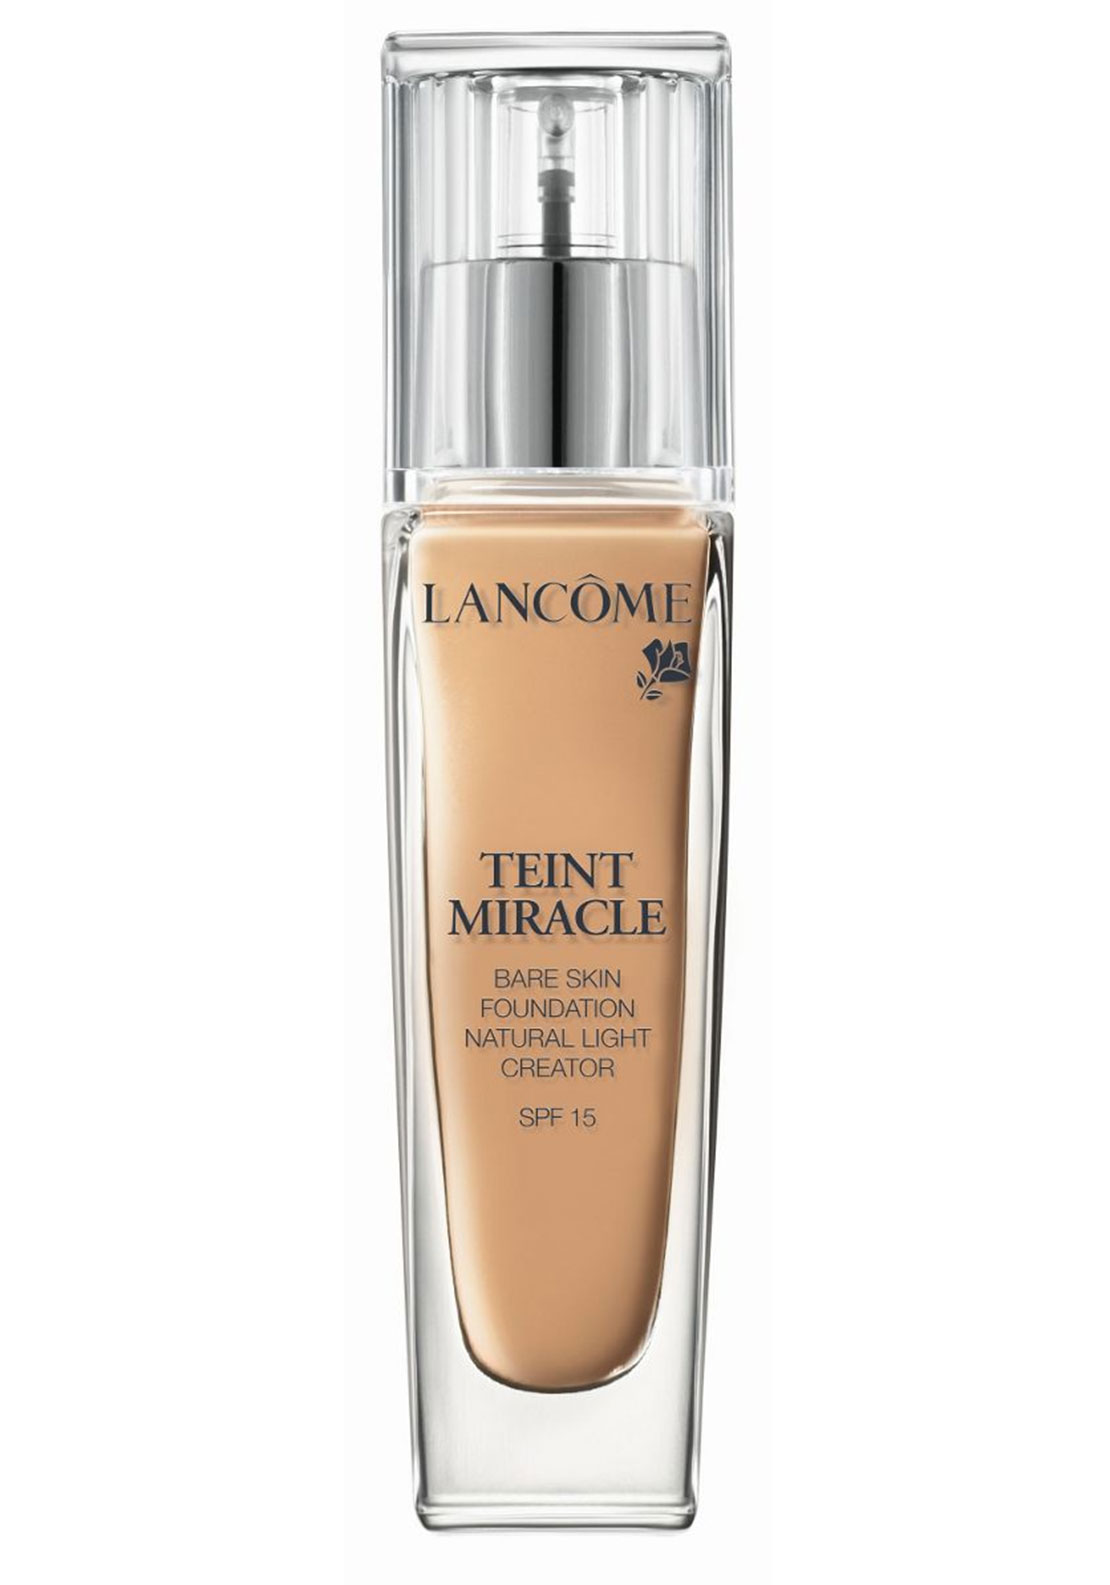 Lancome Teint Miracle Foundation, Lancome 05 Beige Noisette